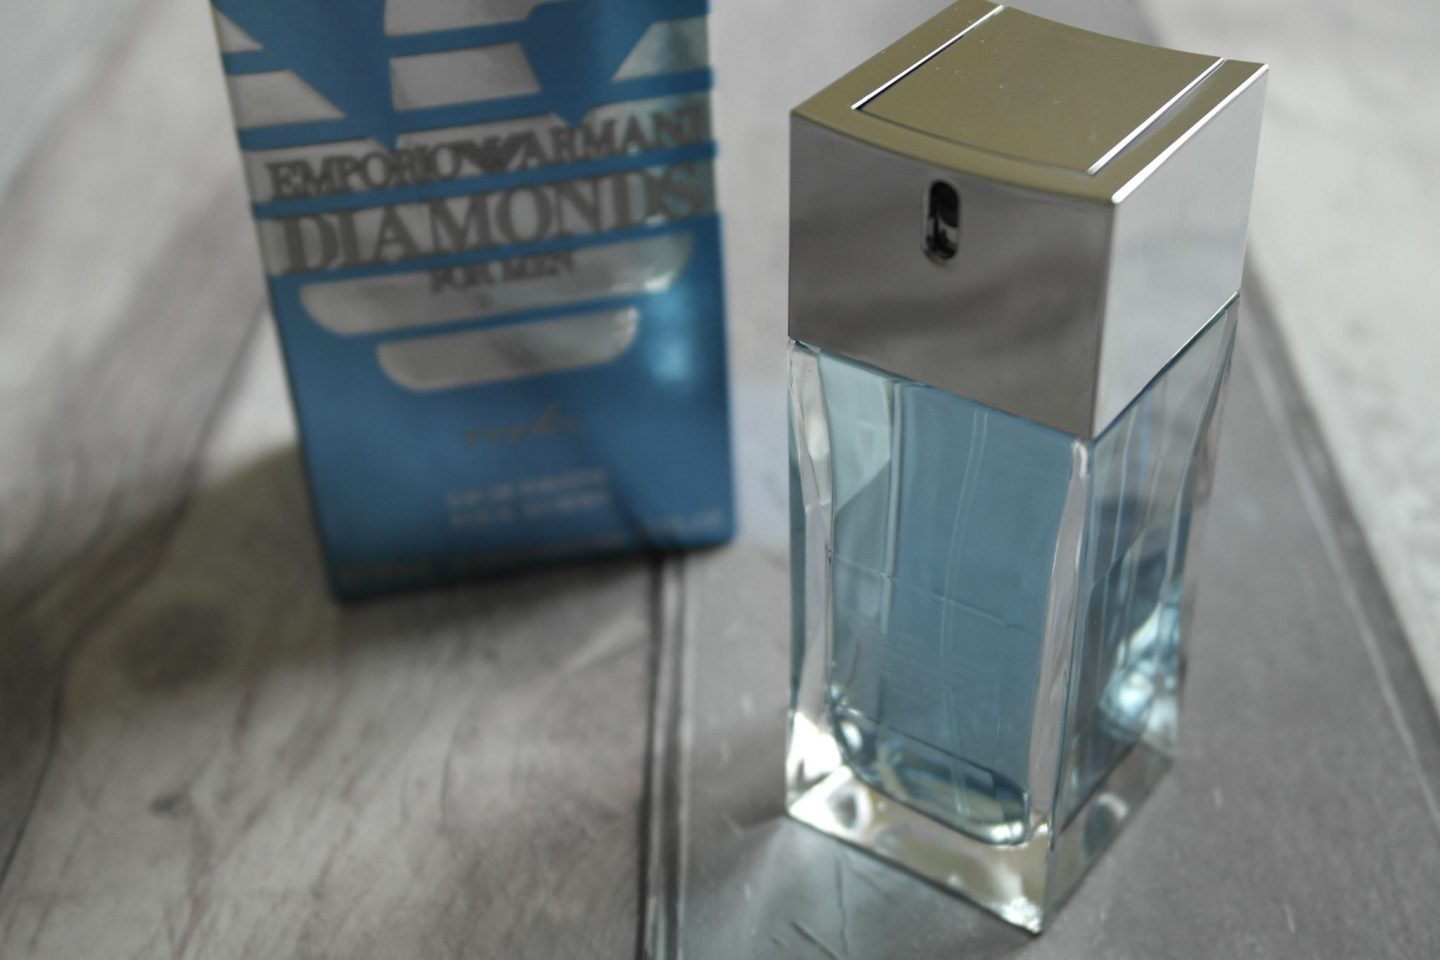 Emporio Armani Diamonds Rocks